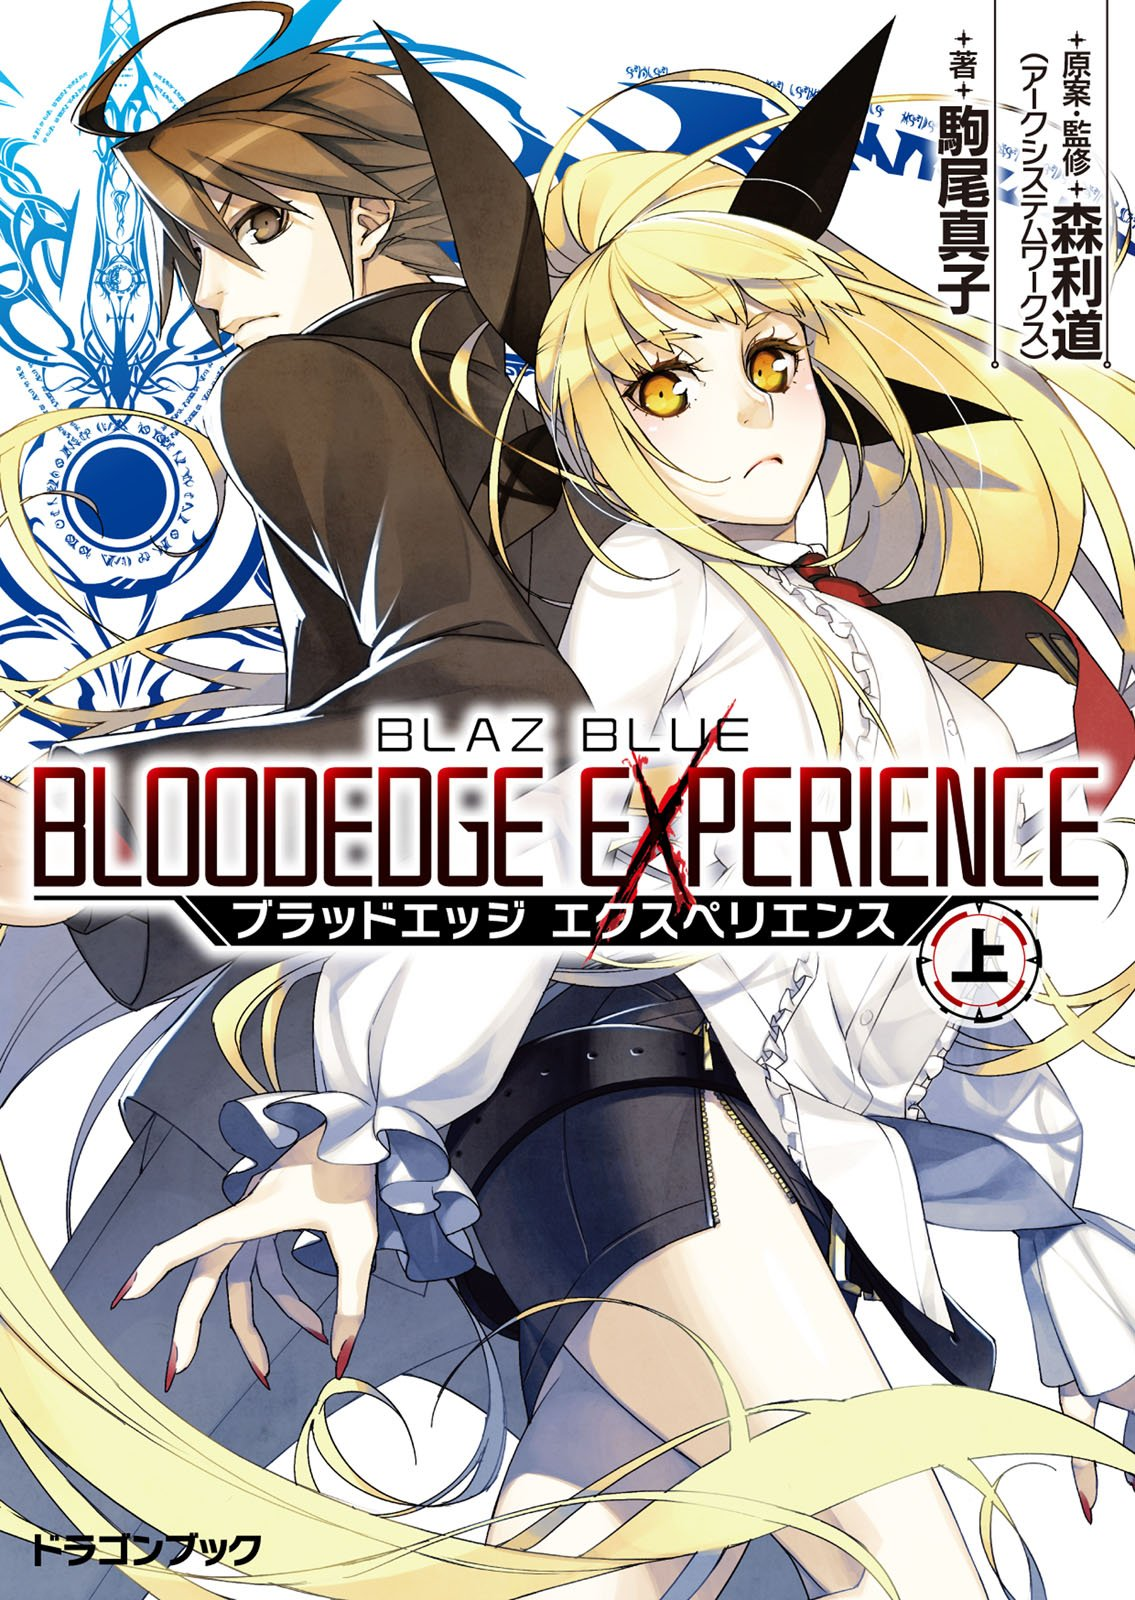 BlazBlue: Bloodedge Experience - Part 1 (June 2014)